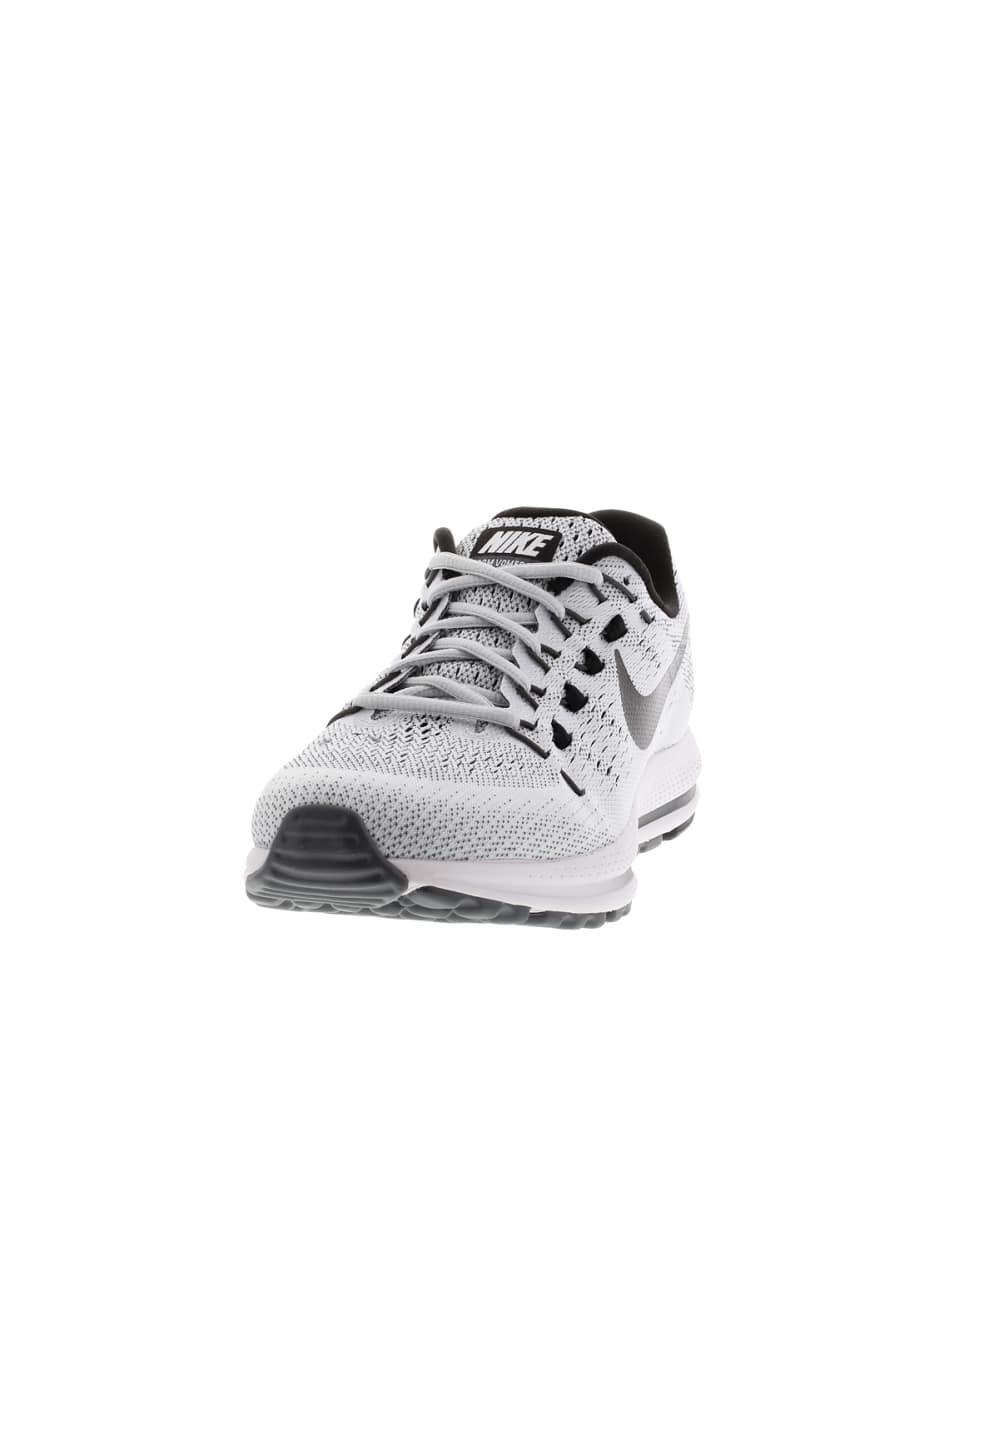 7bd5af0da57 Next. -70%. Nike. Air Zoom Vomero 12 TB - Running shoes for Women